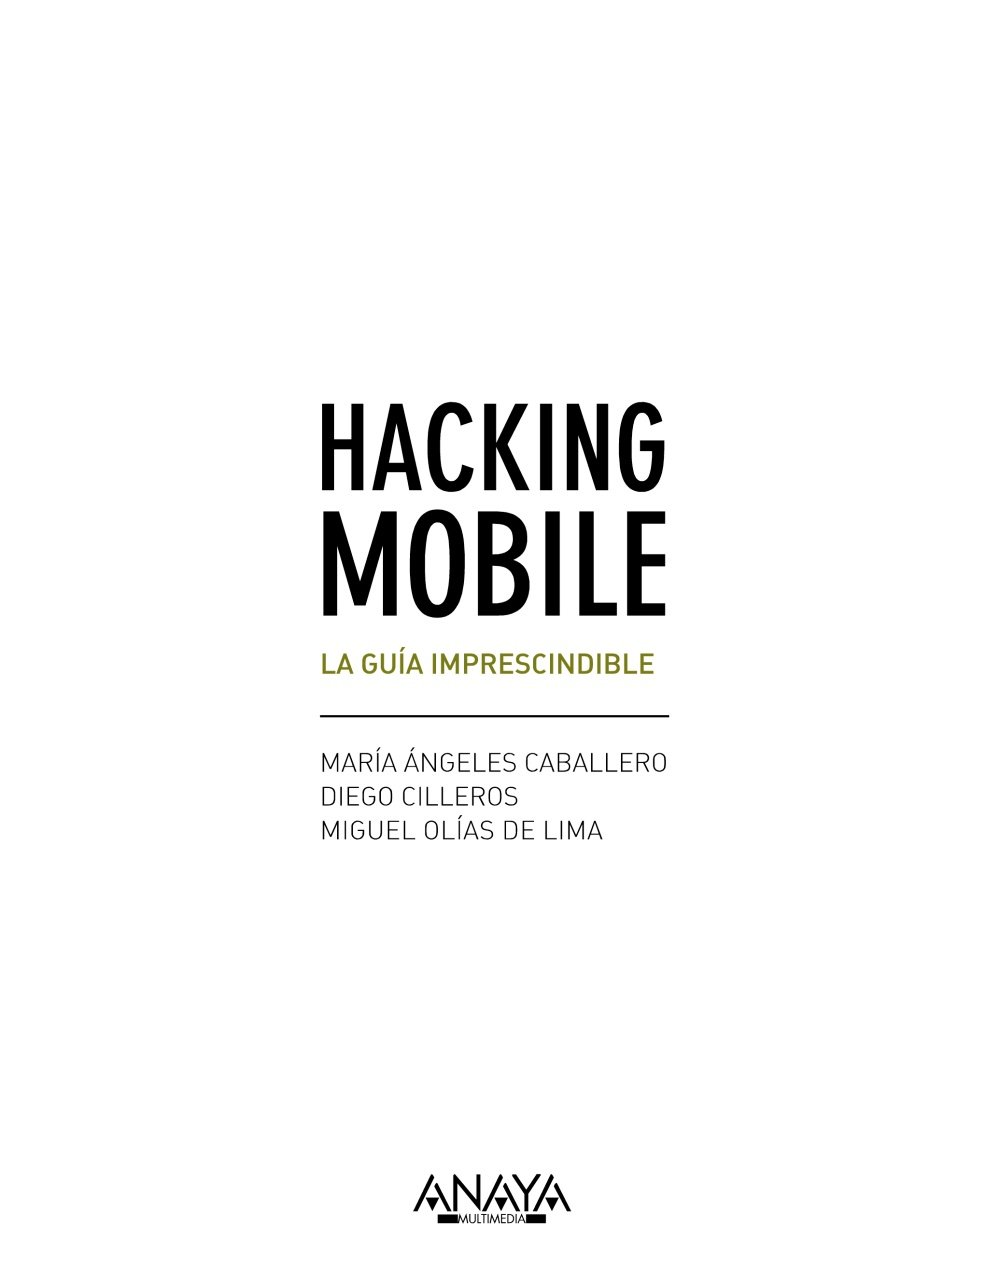 Hacking Mobile. La guía imprescindible (Títulos Especiales) Tapa blanda – 8 sep 2016 Diego Cilleros Serrano ANAYA MULTIMEDIA 8441538247 Computer fraud & hacking